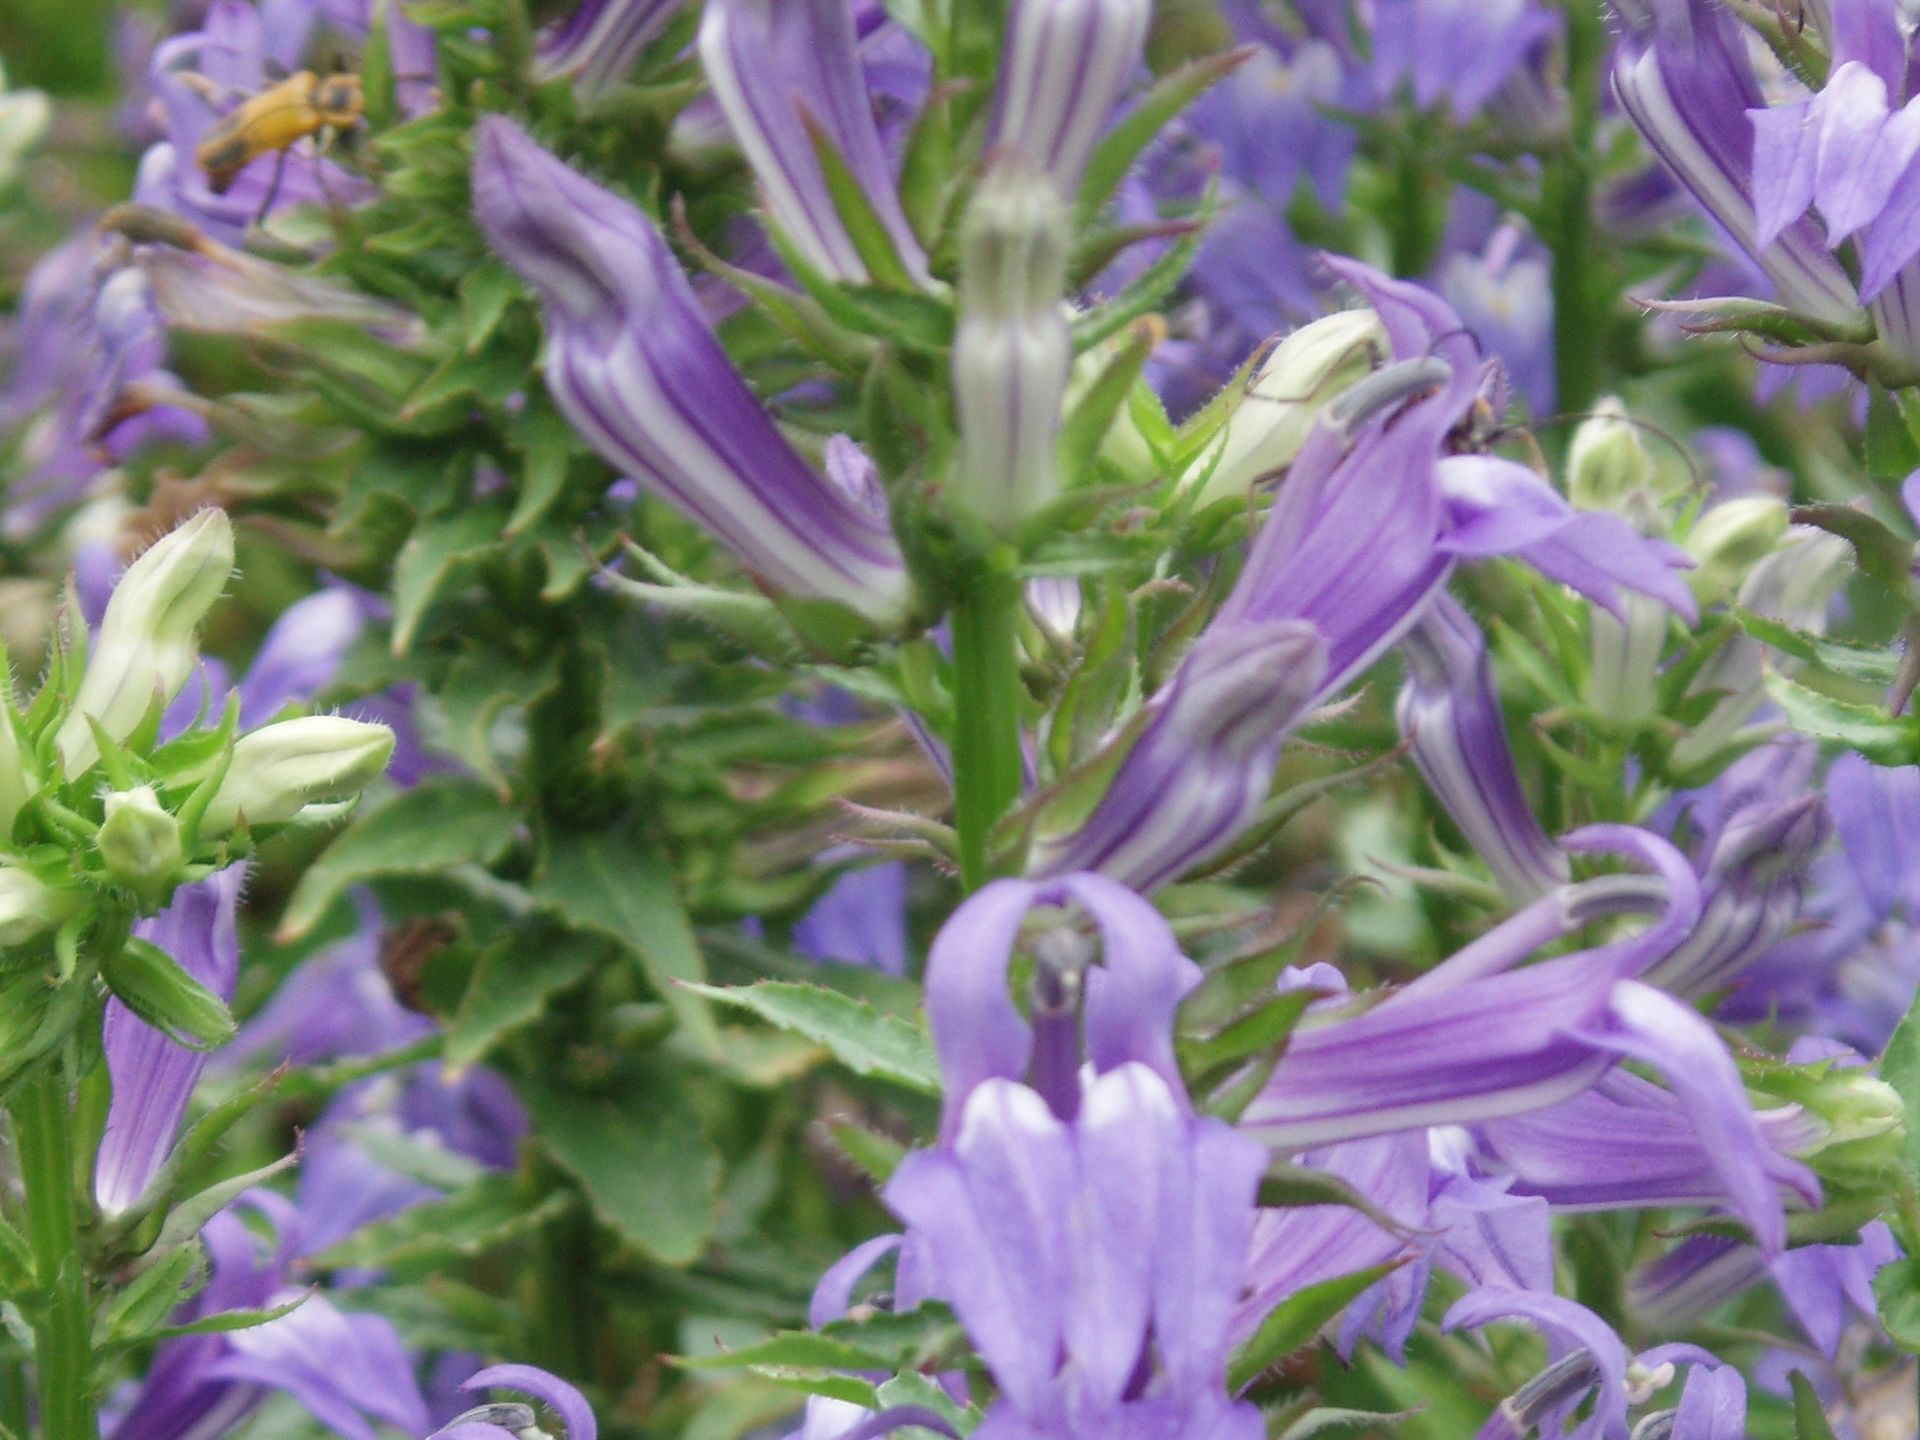 "{""blocks"":[{""key"":""4cdt1"",""text"":""Lobelia siphilitica Great Blue Lobelia Blue Cardinal Flower - potted plants email john@easywildflowers.com"",""type"":""unstyled"",""depth"":0,""inlineStyleRanges"":[],""entityRanges"":[],""data"":{}}],""entityMap"":{}}"